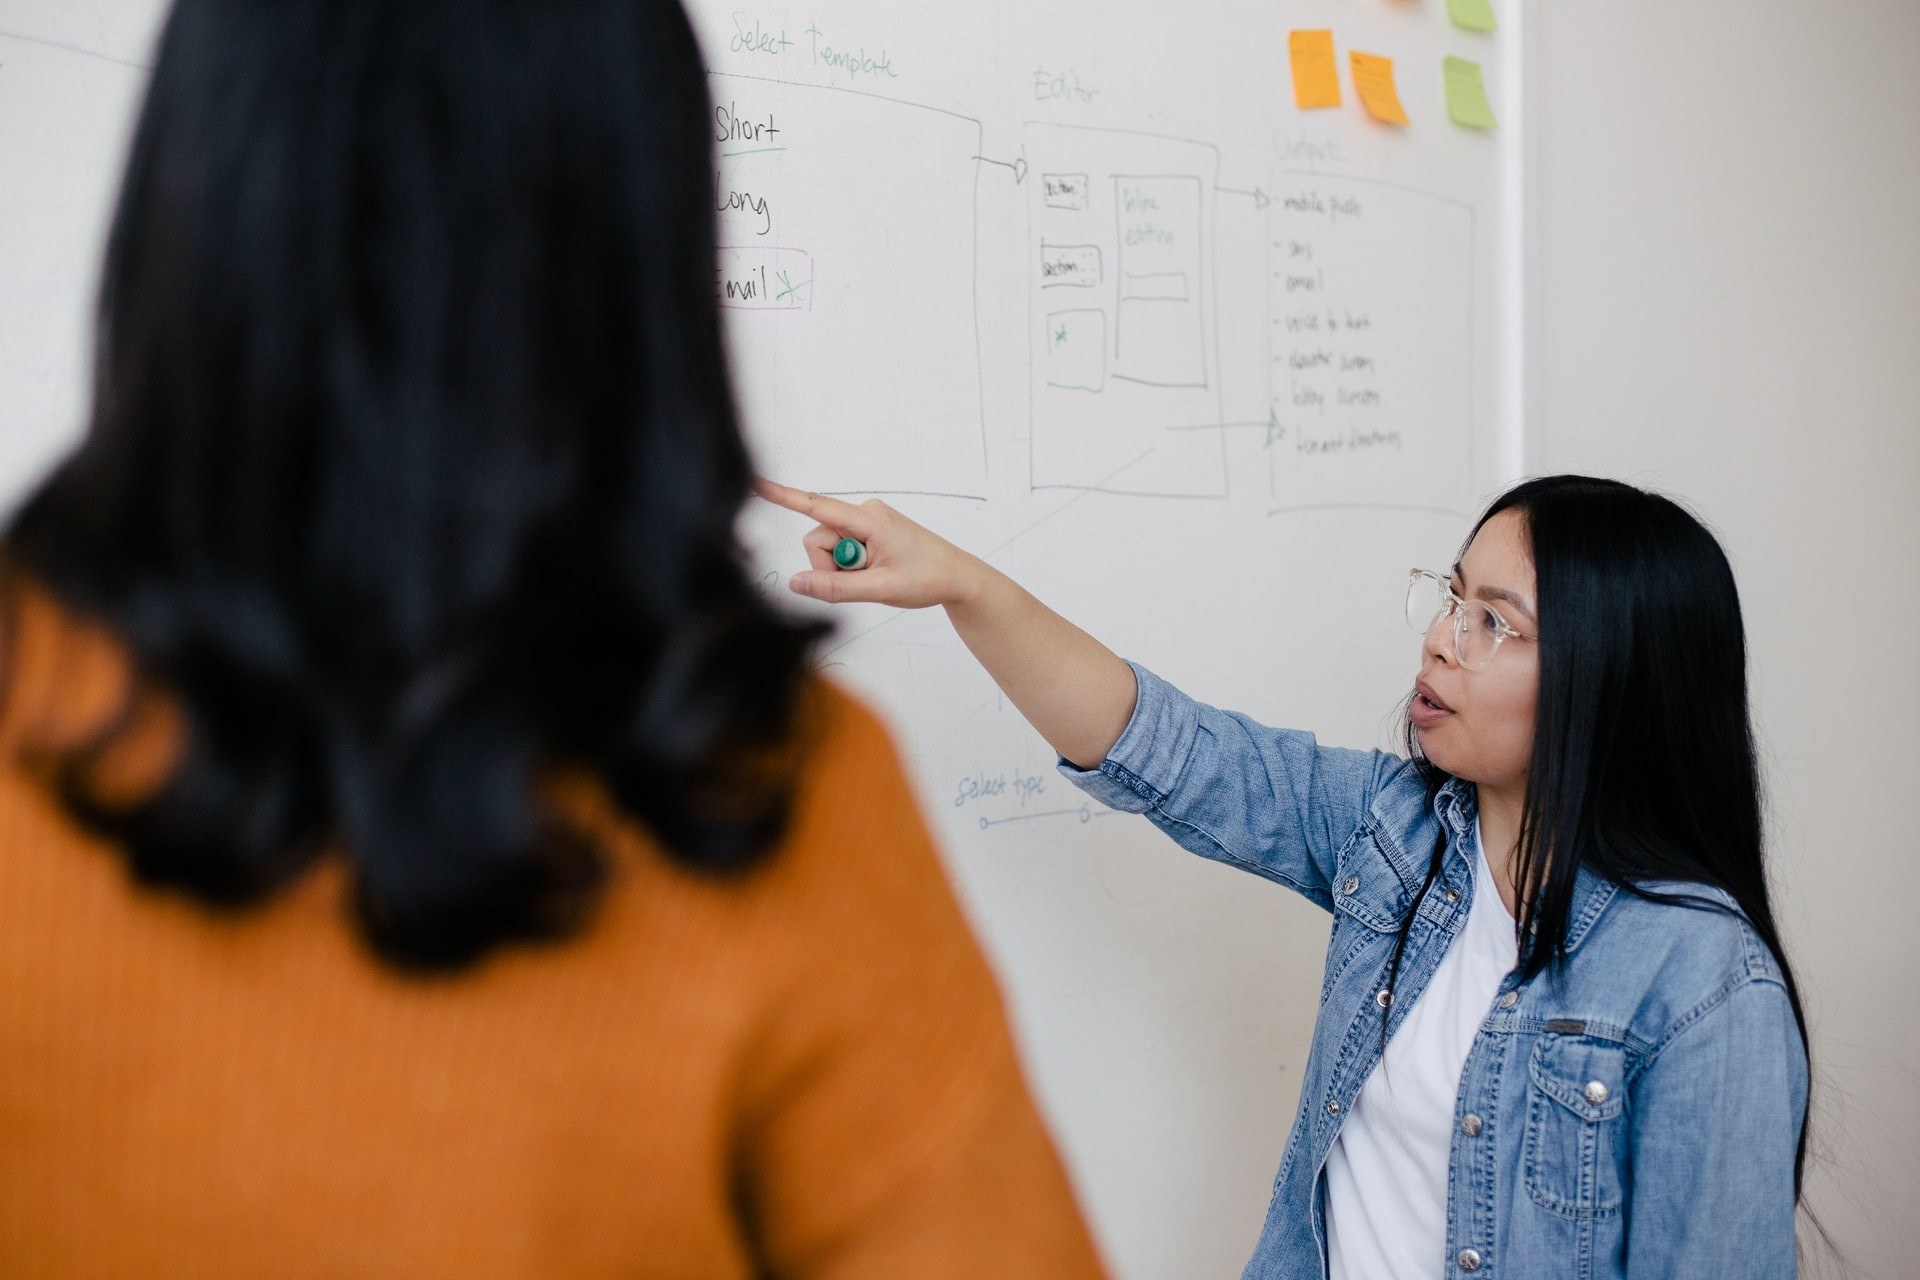 Two female students stand at a whiteboard and discuss a diagram.